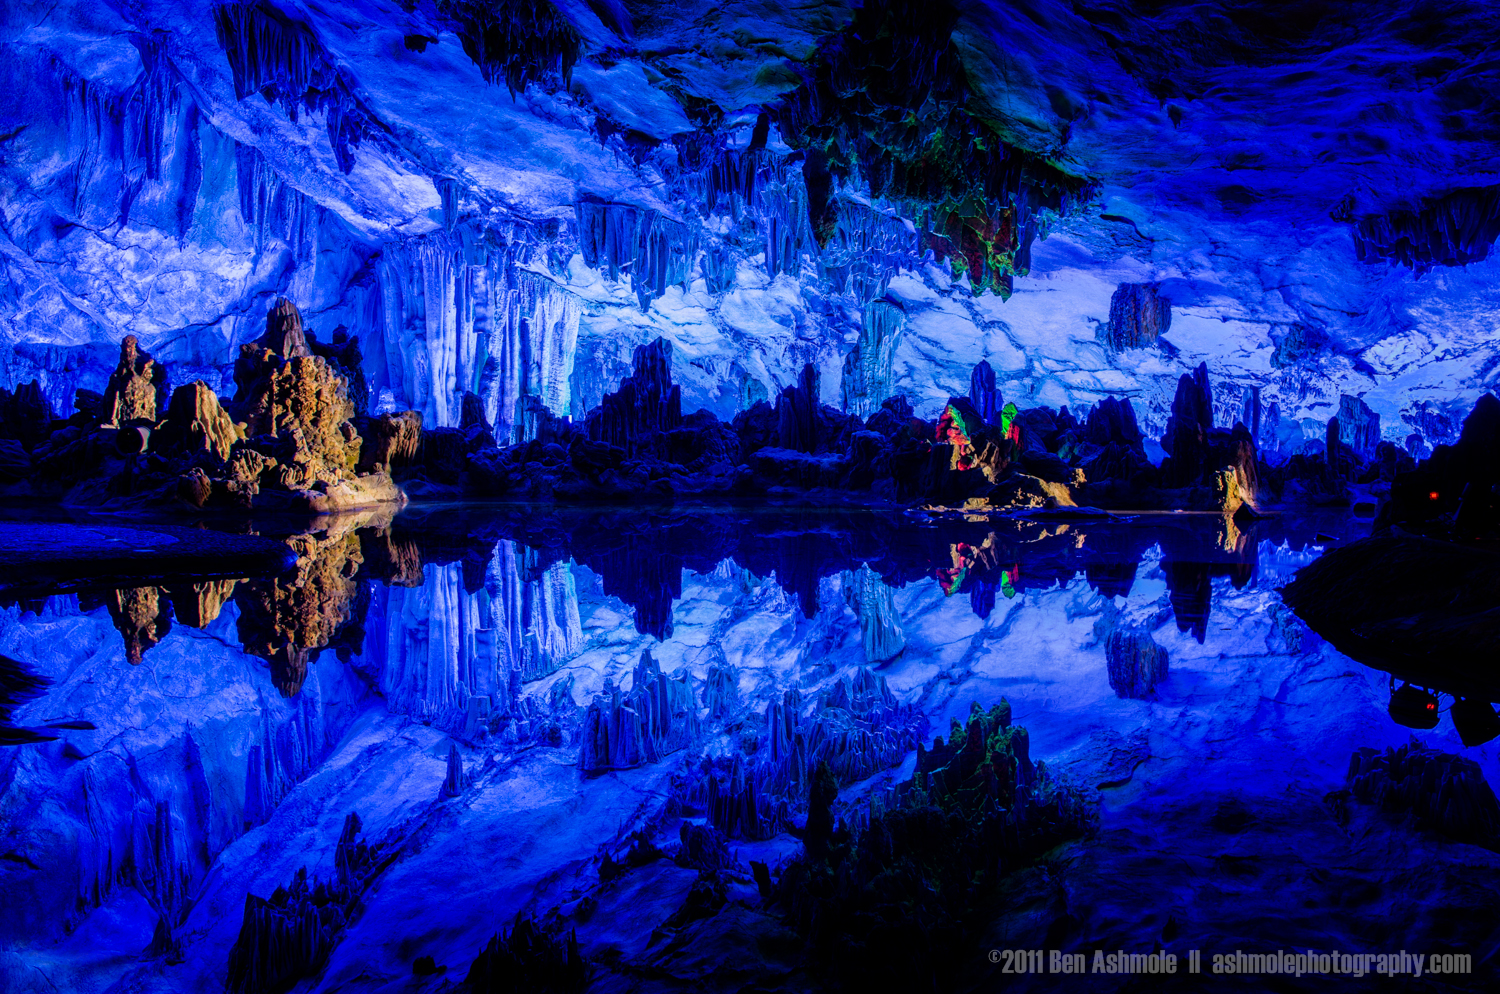 Underground Pool Reflection, Reed Flute Caves, Guangxi province,